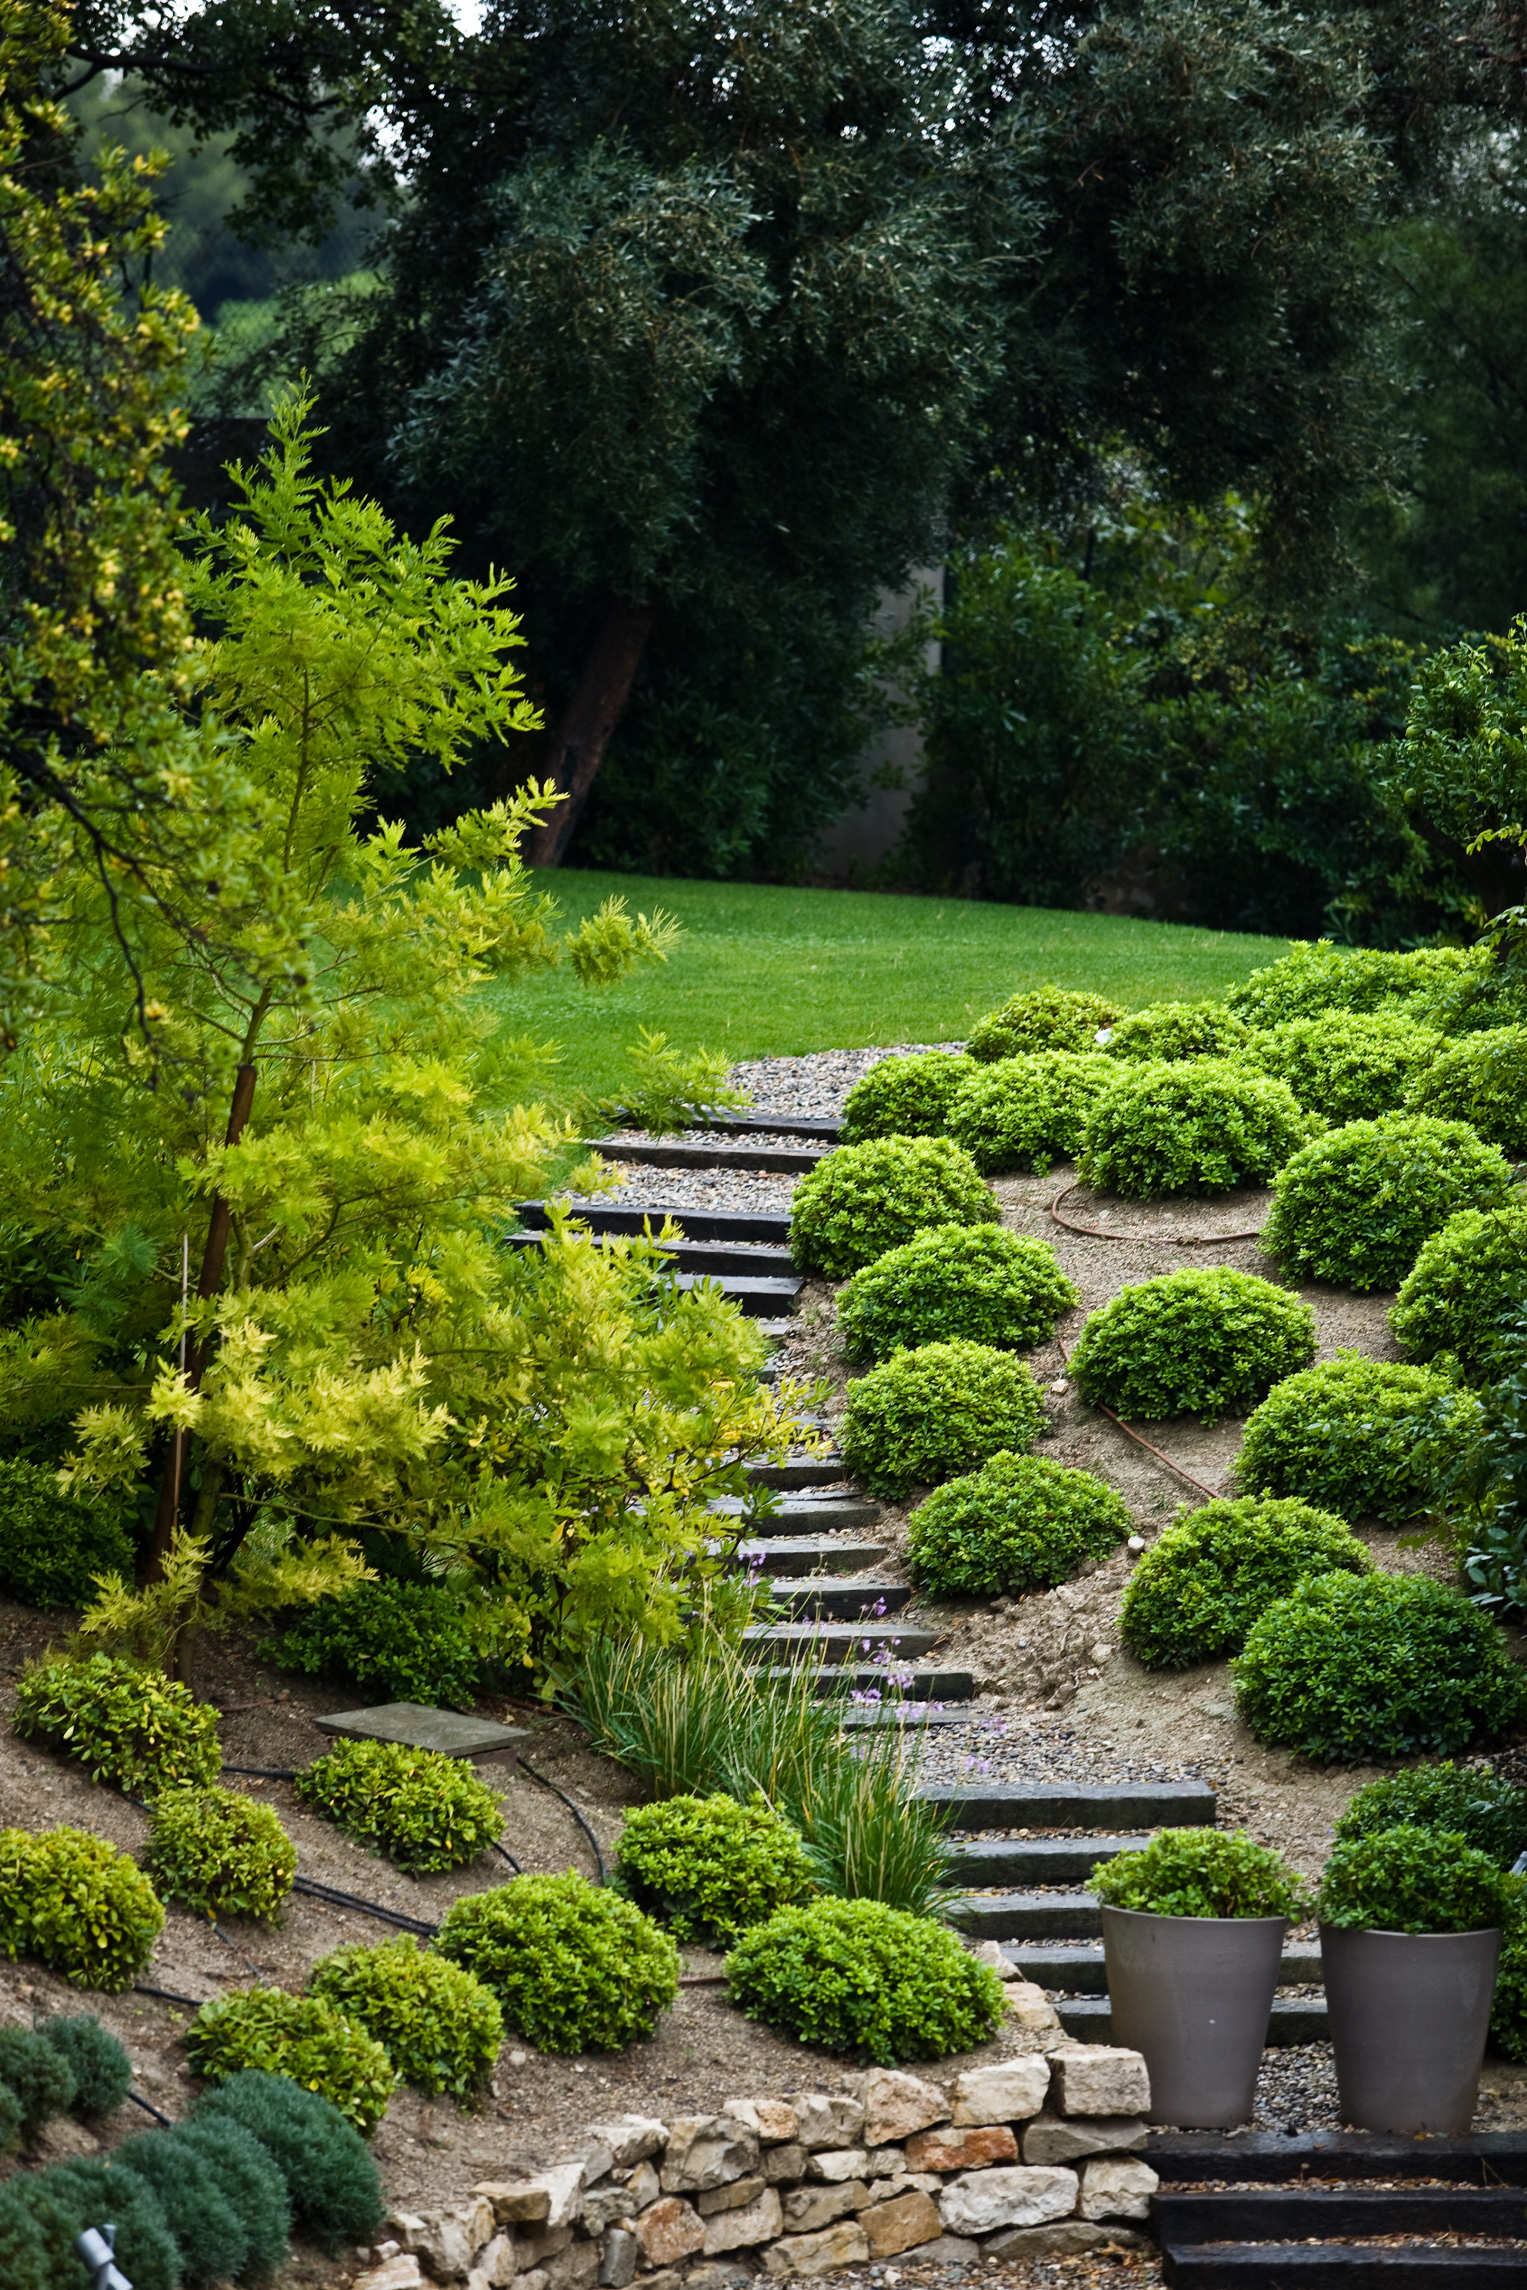 Landscaping Ideas: How to Stabilize a Steep Slope | Home ... on Steep Sloping Garden Ideas  id=24893